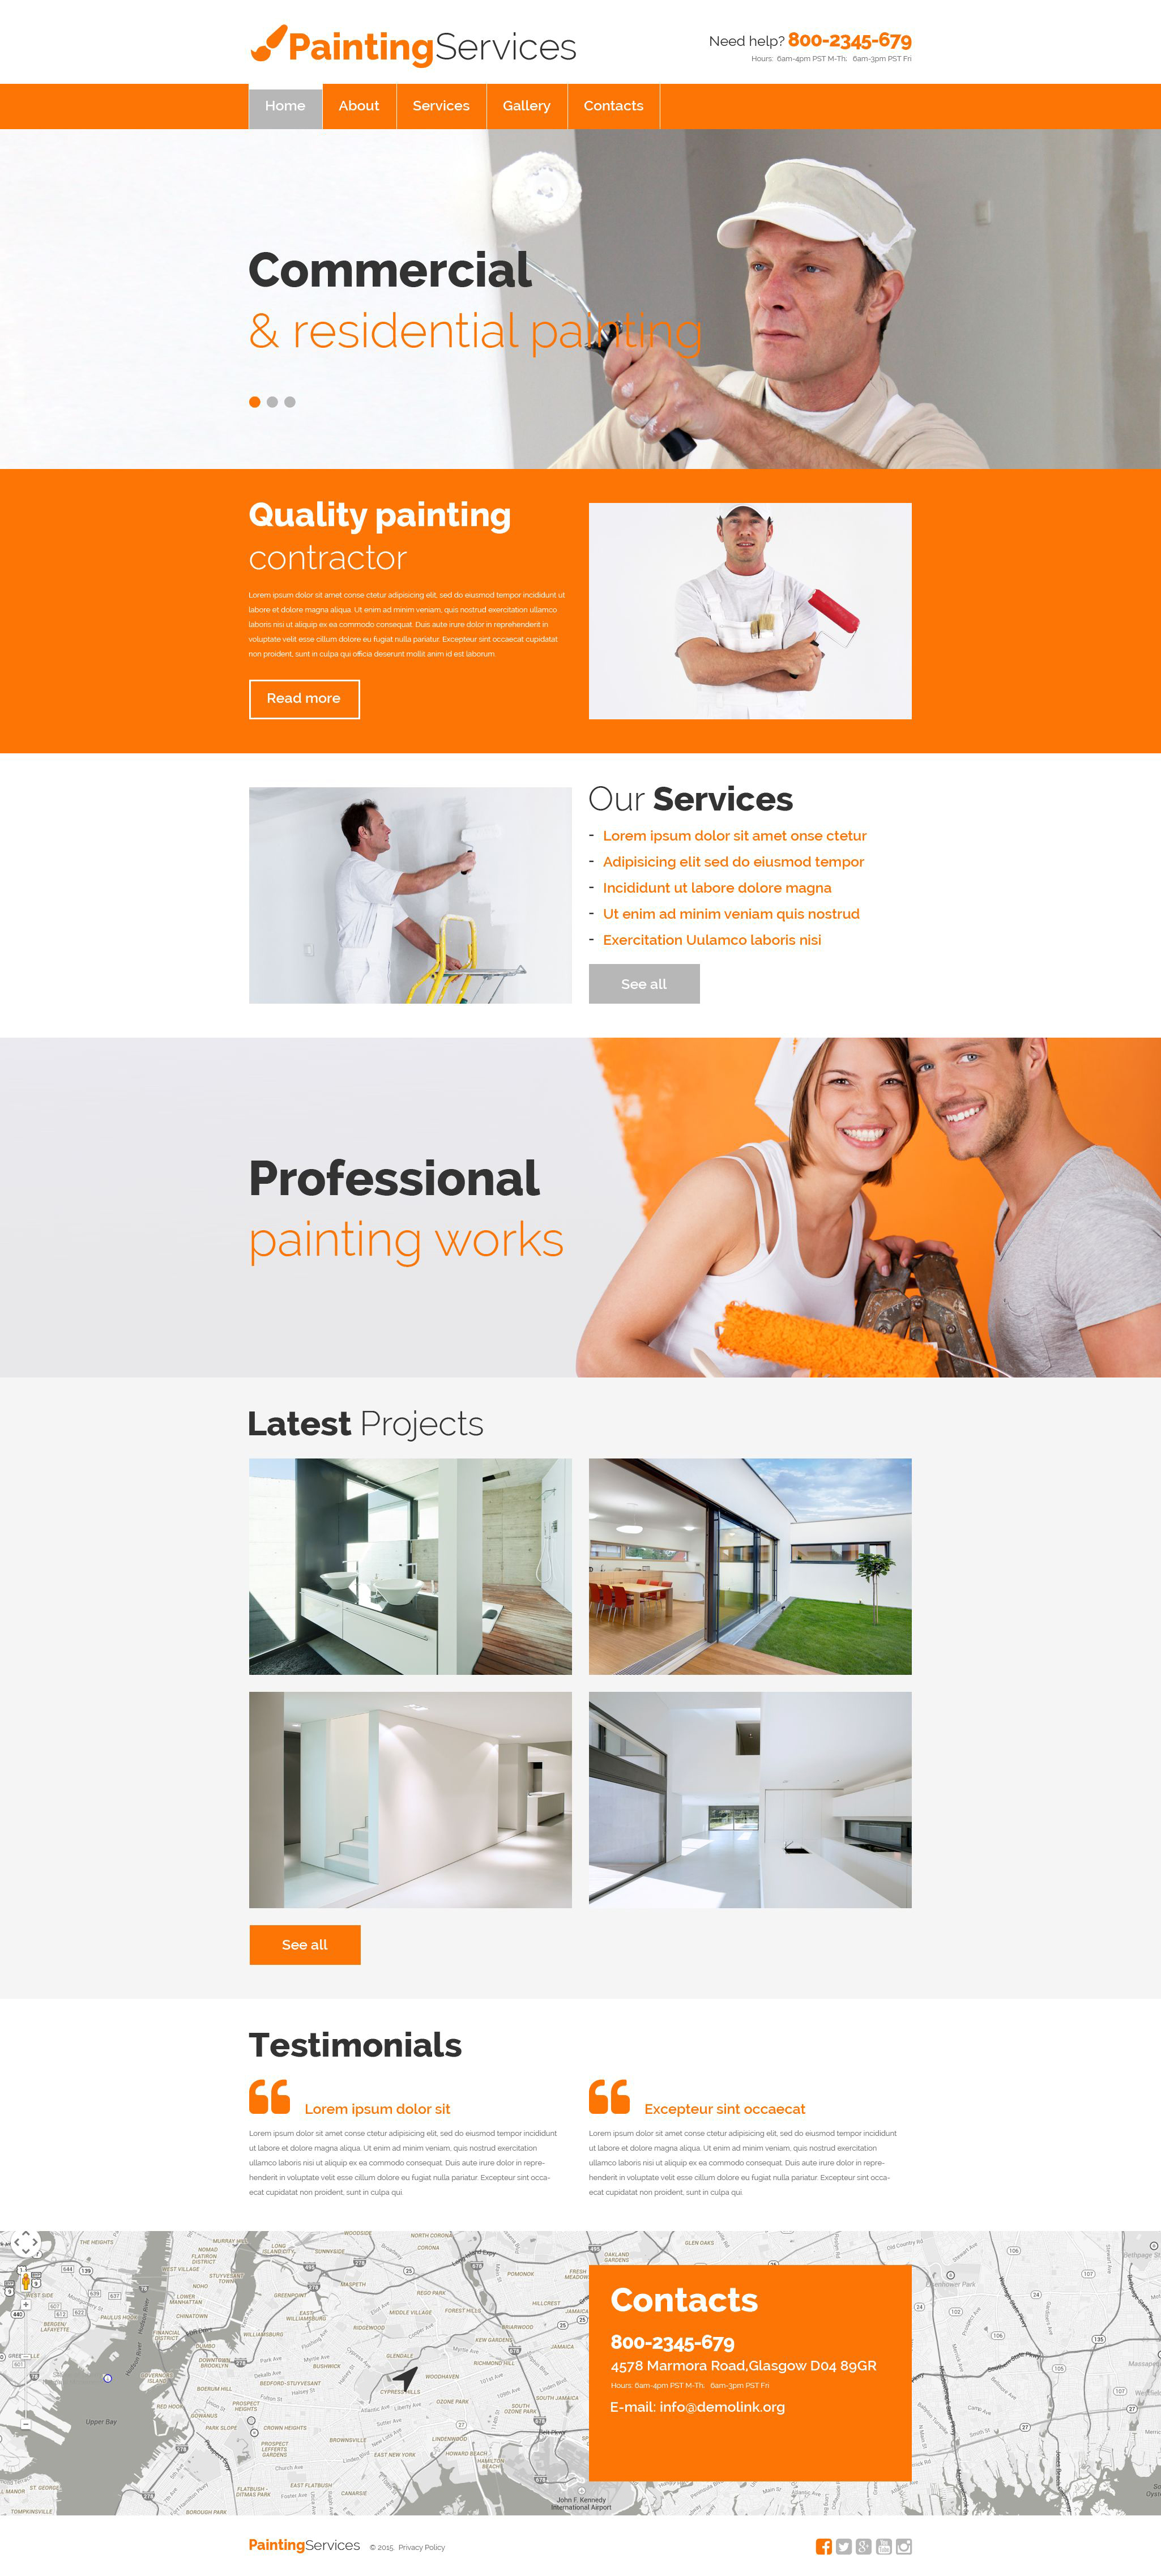 The Painting Contractor Responsive Javascript Animated Design 54649, one of the best website templates of its kind (most popular, maintenance services), also known as painting contractor website template, palette website template, color company website template, services website template, projects website template, gallery website template, color website template, brush website template, brushes website template, home website template, interior website template, exterior website template, renewal website template, paint website template, dye and related with painting contractor, palette, color company, services, projects, gallery, color, brush, brushes, home, interior, exterior, renewal, paint, dye, etc.